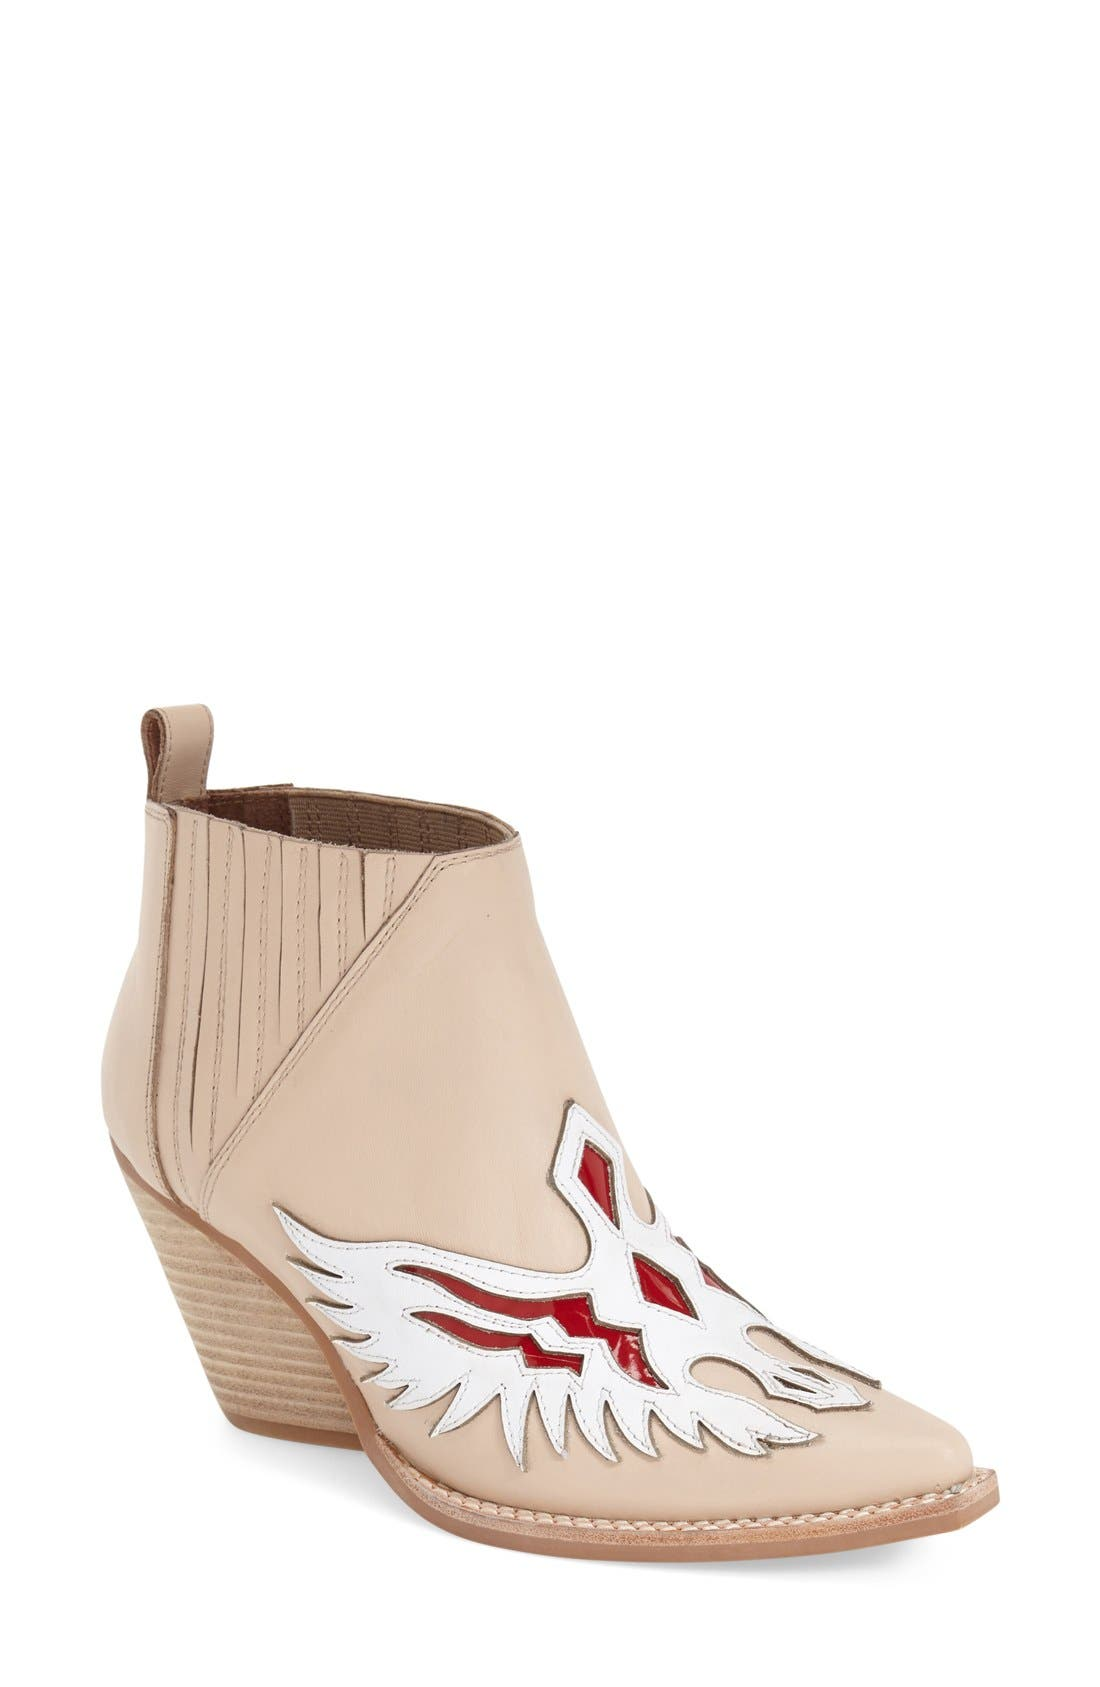 'Fawkes' Bootie,                         Main,                         color, 280